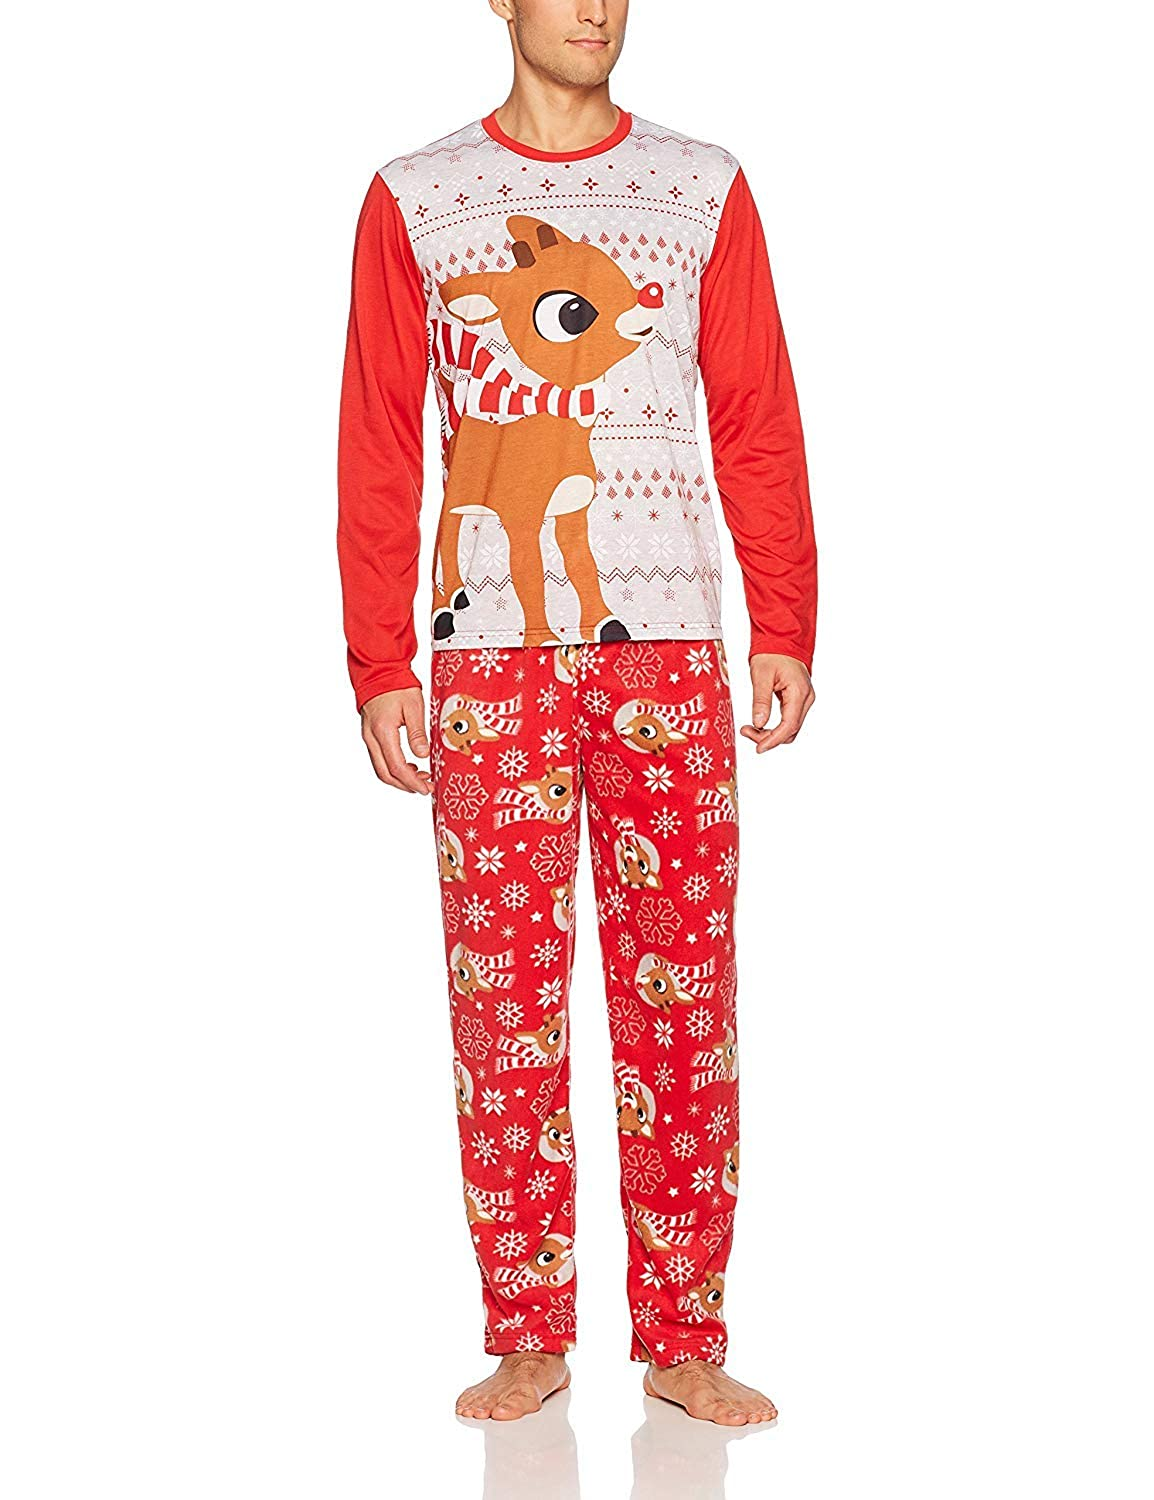 Rudolph the Red Nosed Reindeer Christmas Holiday Family Sleepwear Pajamas (Adult/Kid/Toddler/Baby) manufacturer